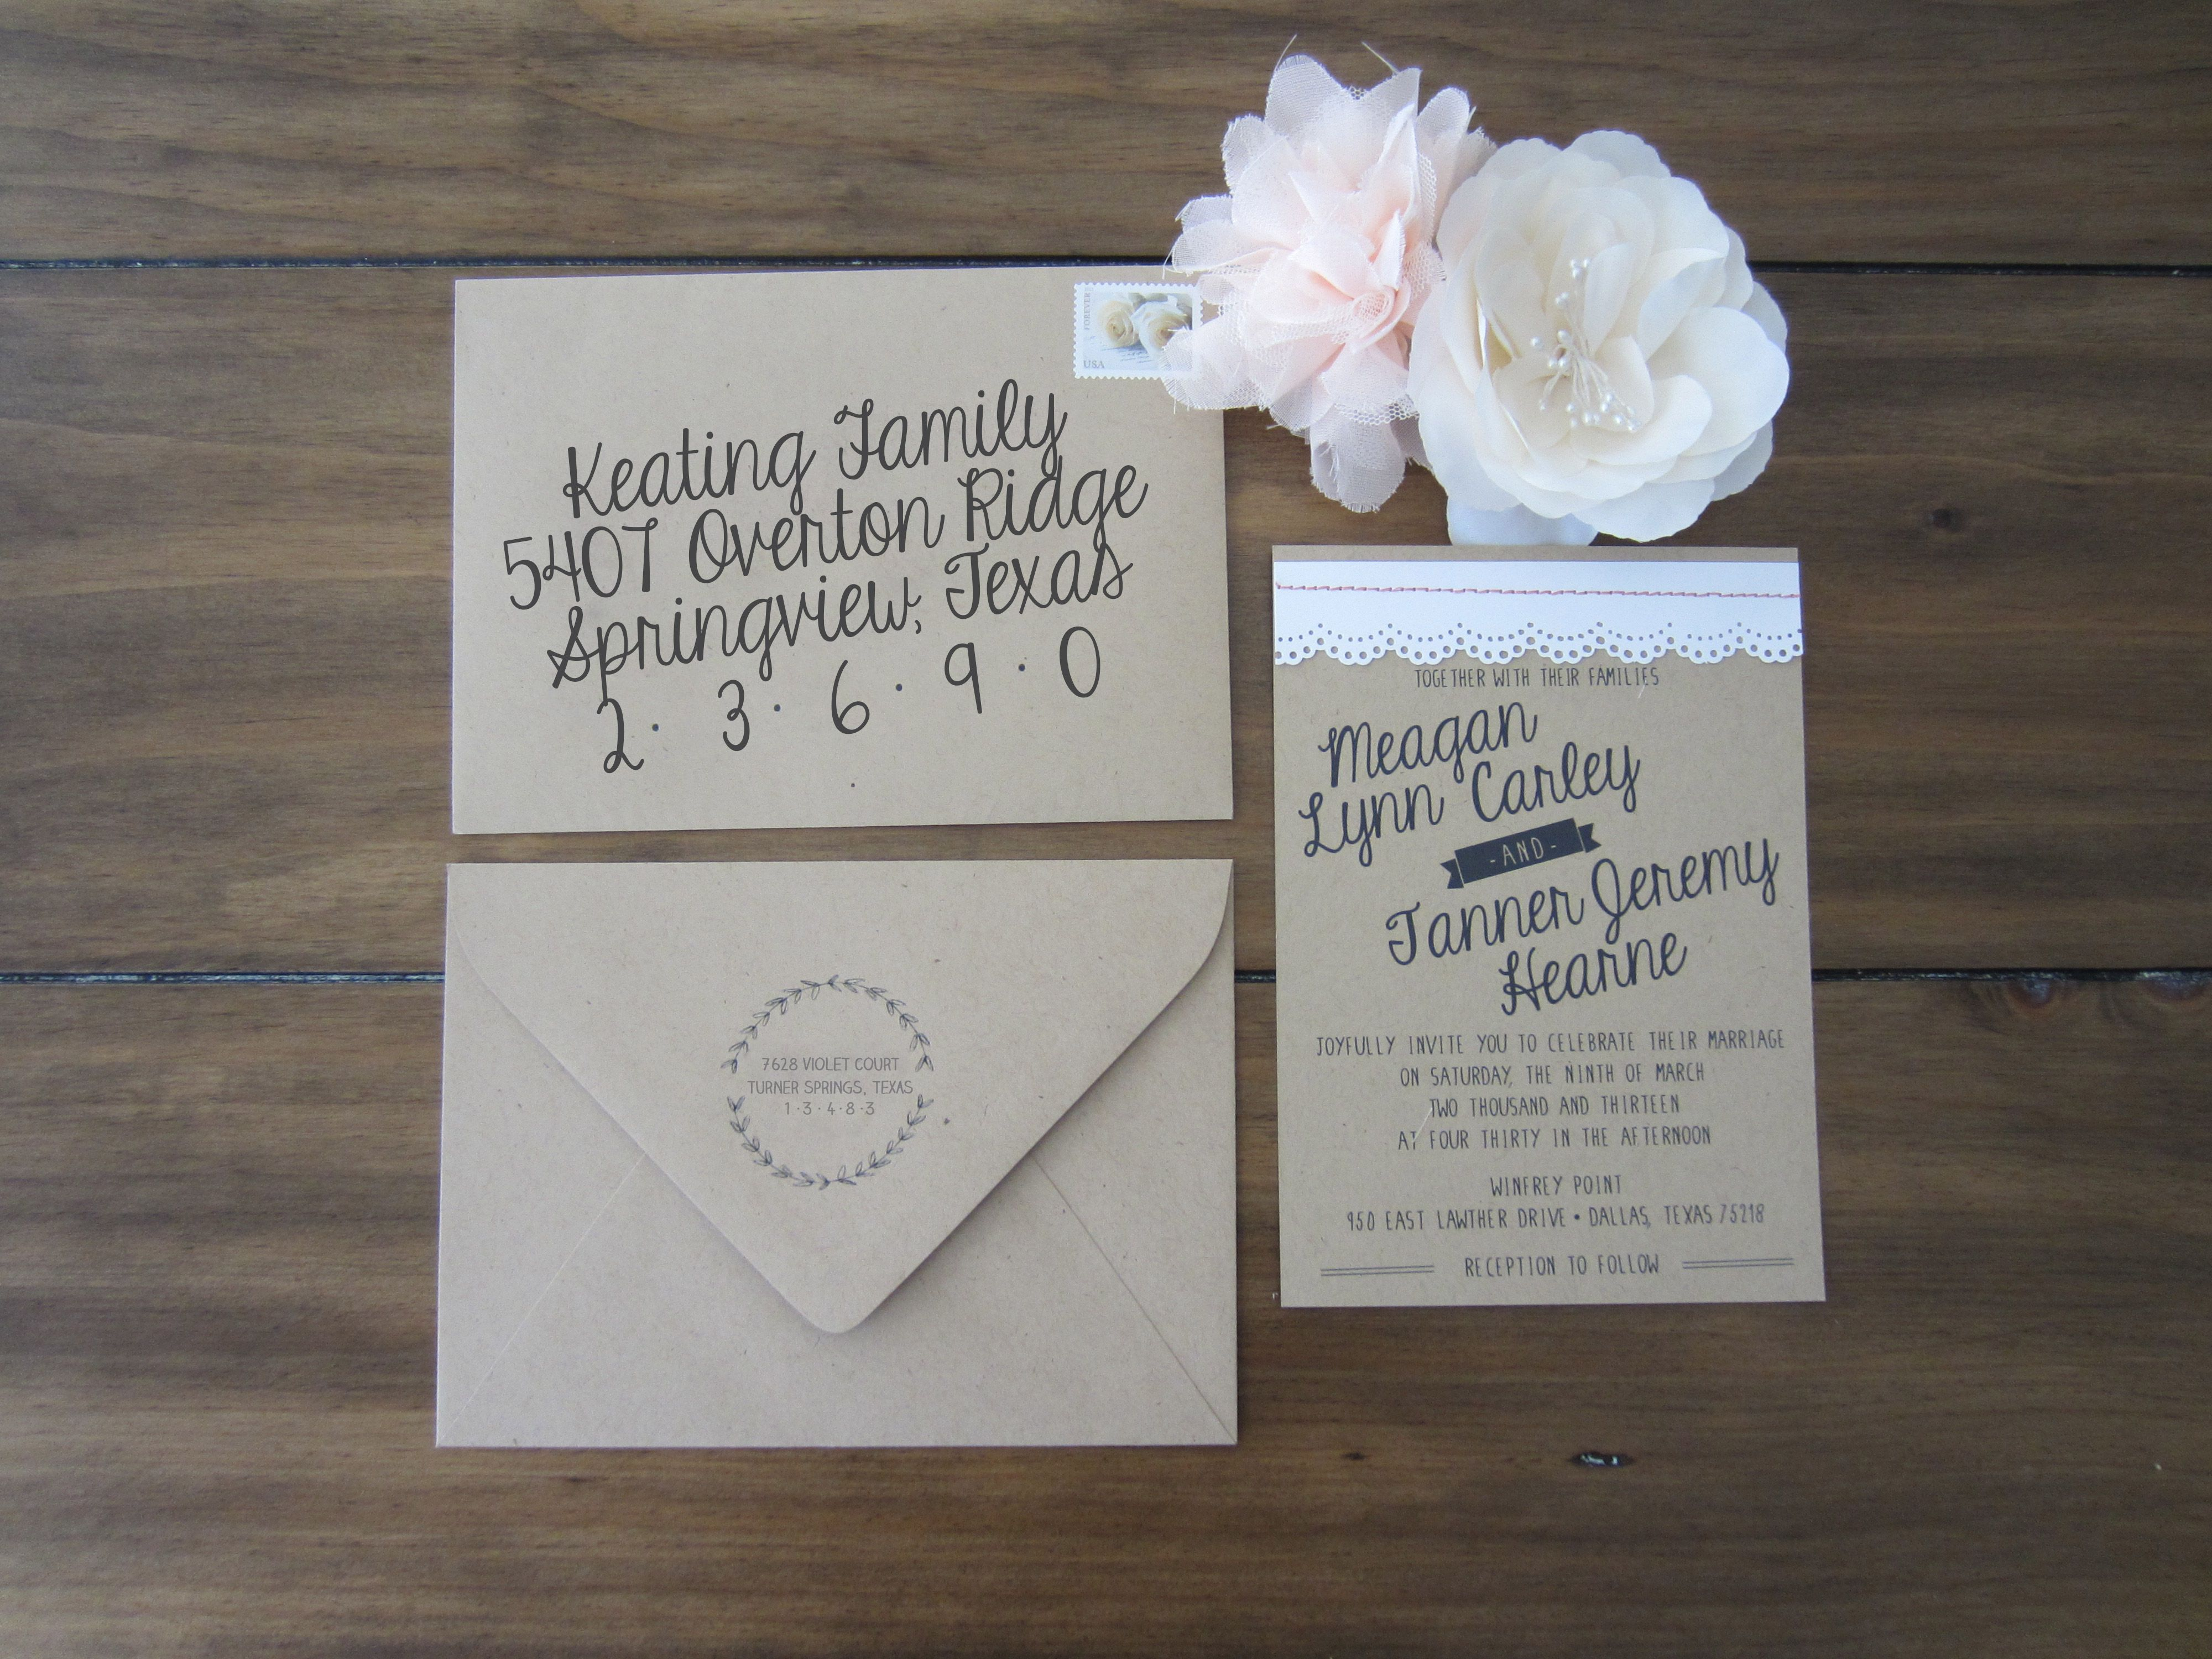 Joyfully Invited Cheap Wedding Invitations Diy Wedding Invitations Diy Wedding Invitations Diy Rustic